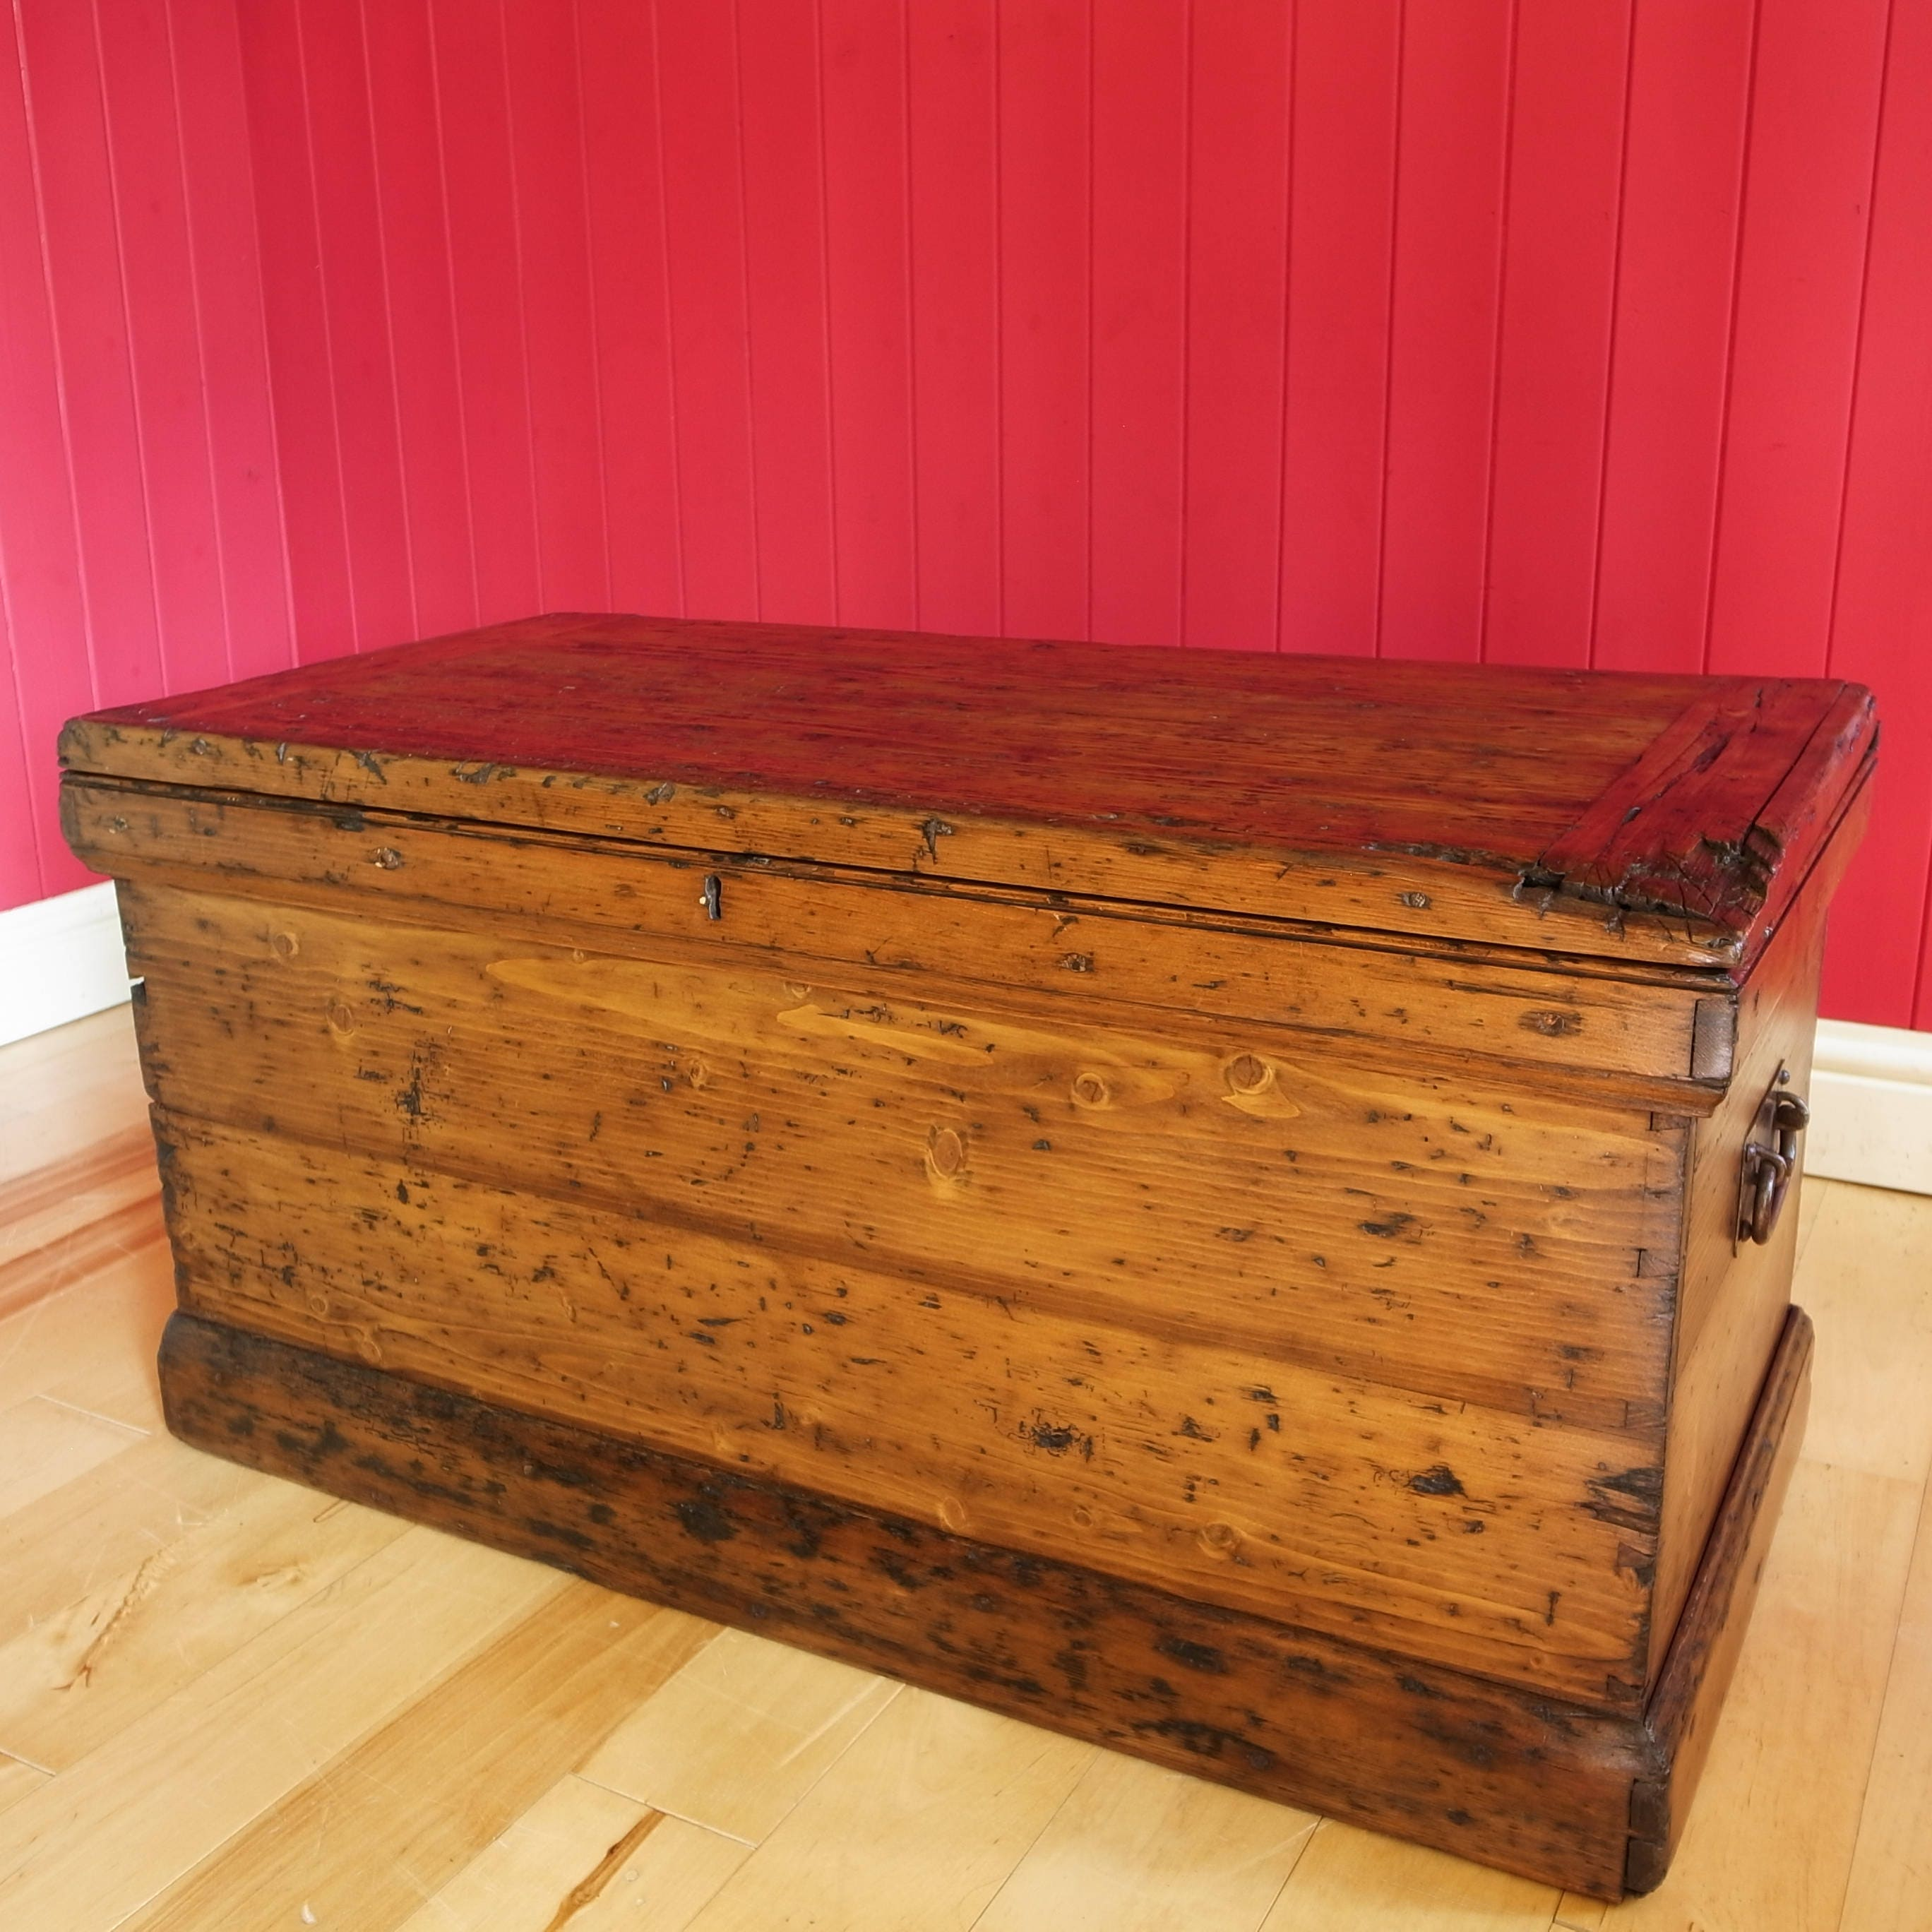 Antique Victorian Rustic Wooden Chest Coffee Table